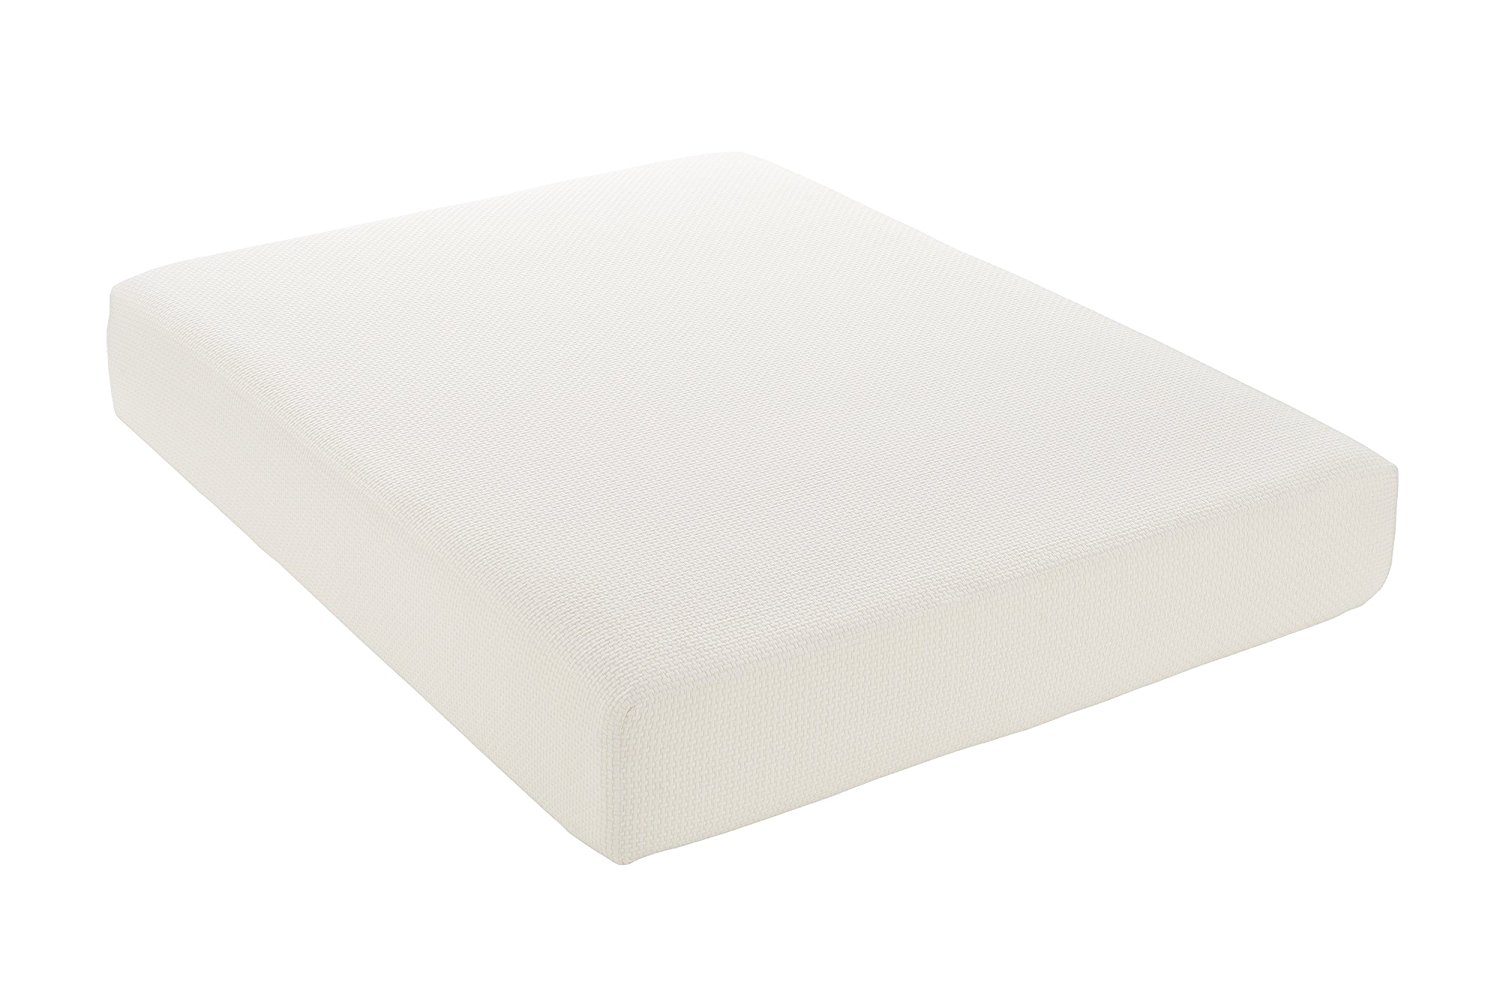 Signature Luxury 8 Inch Memory Foam Mattress Full Size Discount Furniture Warehouse